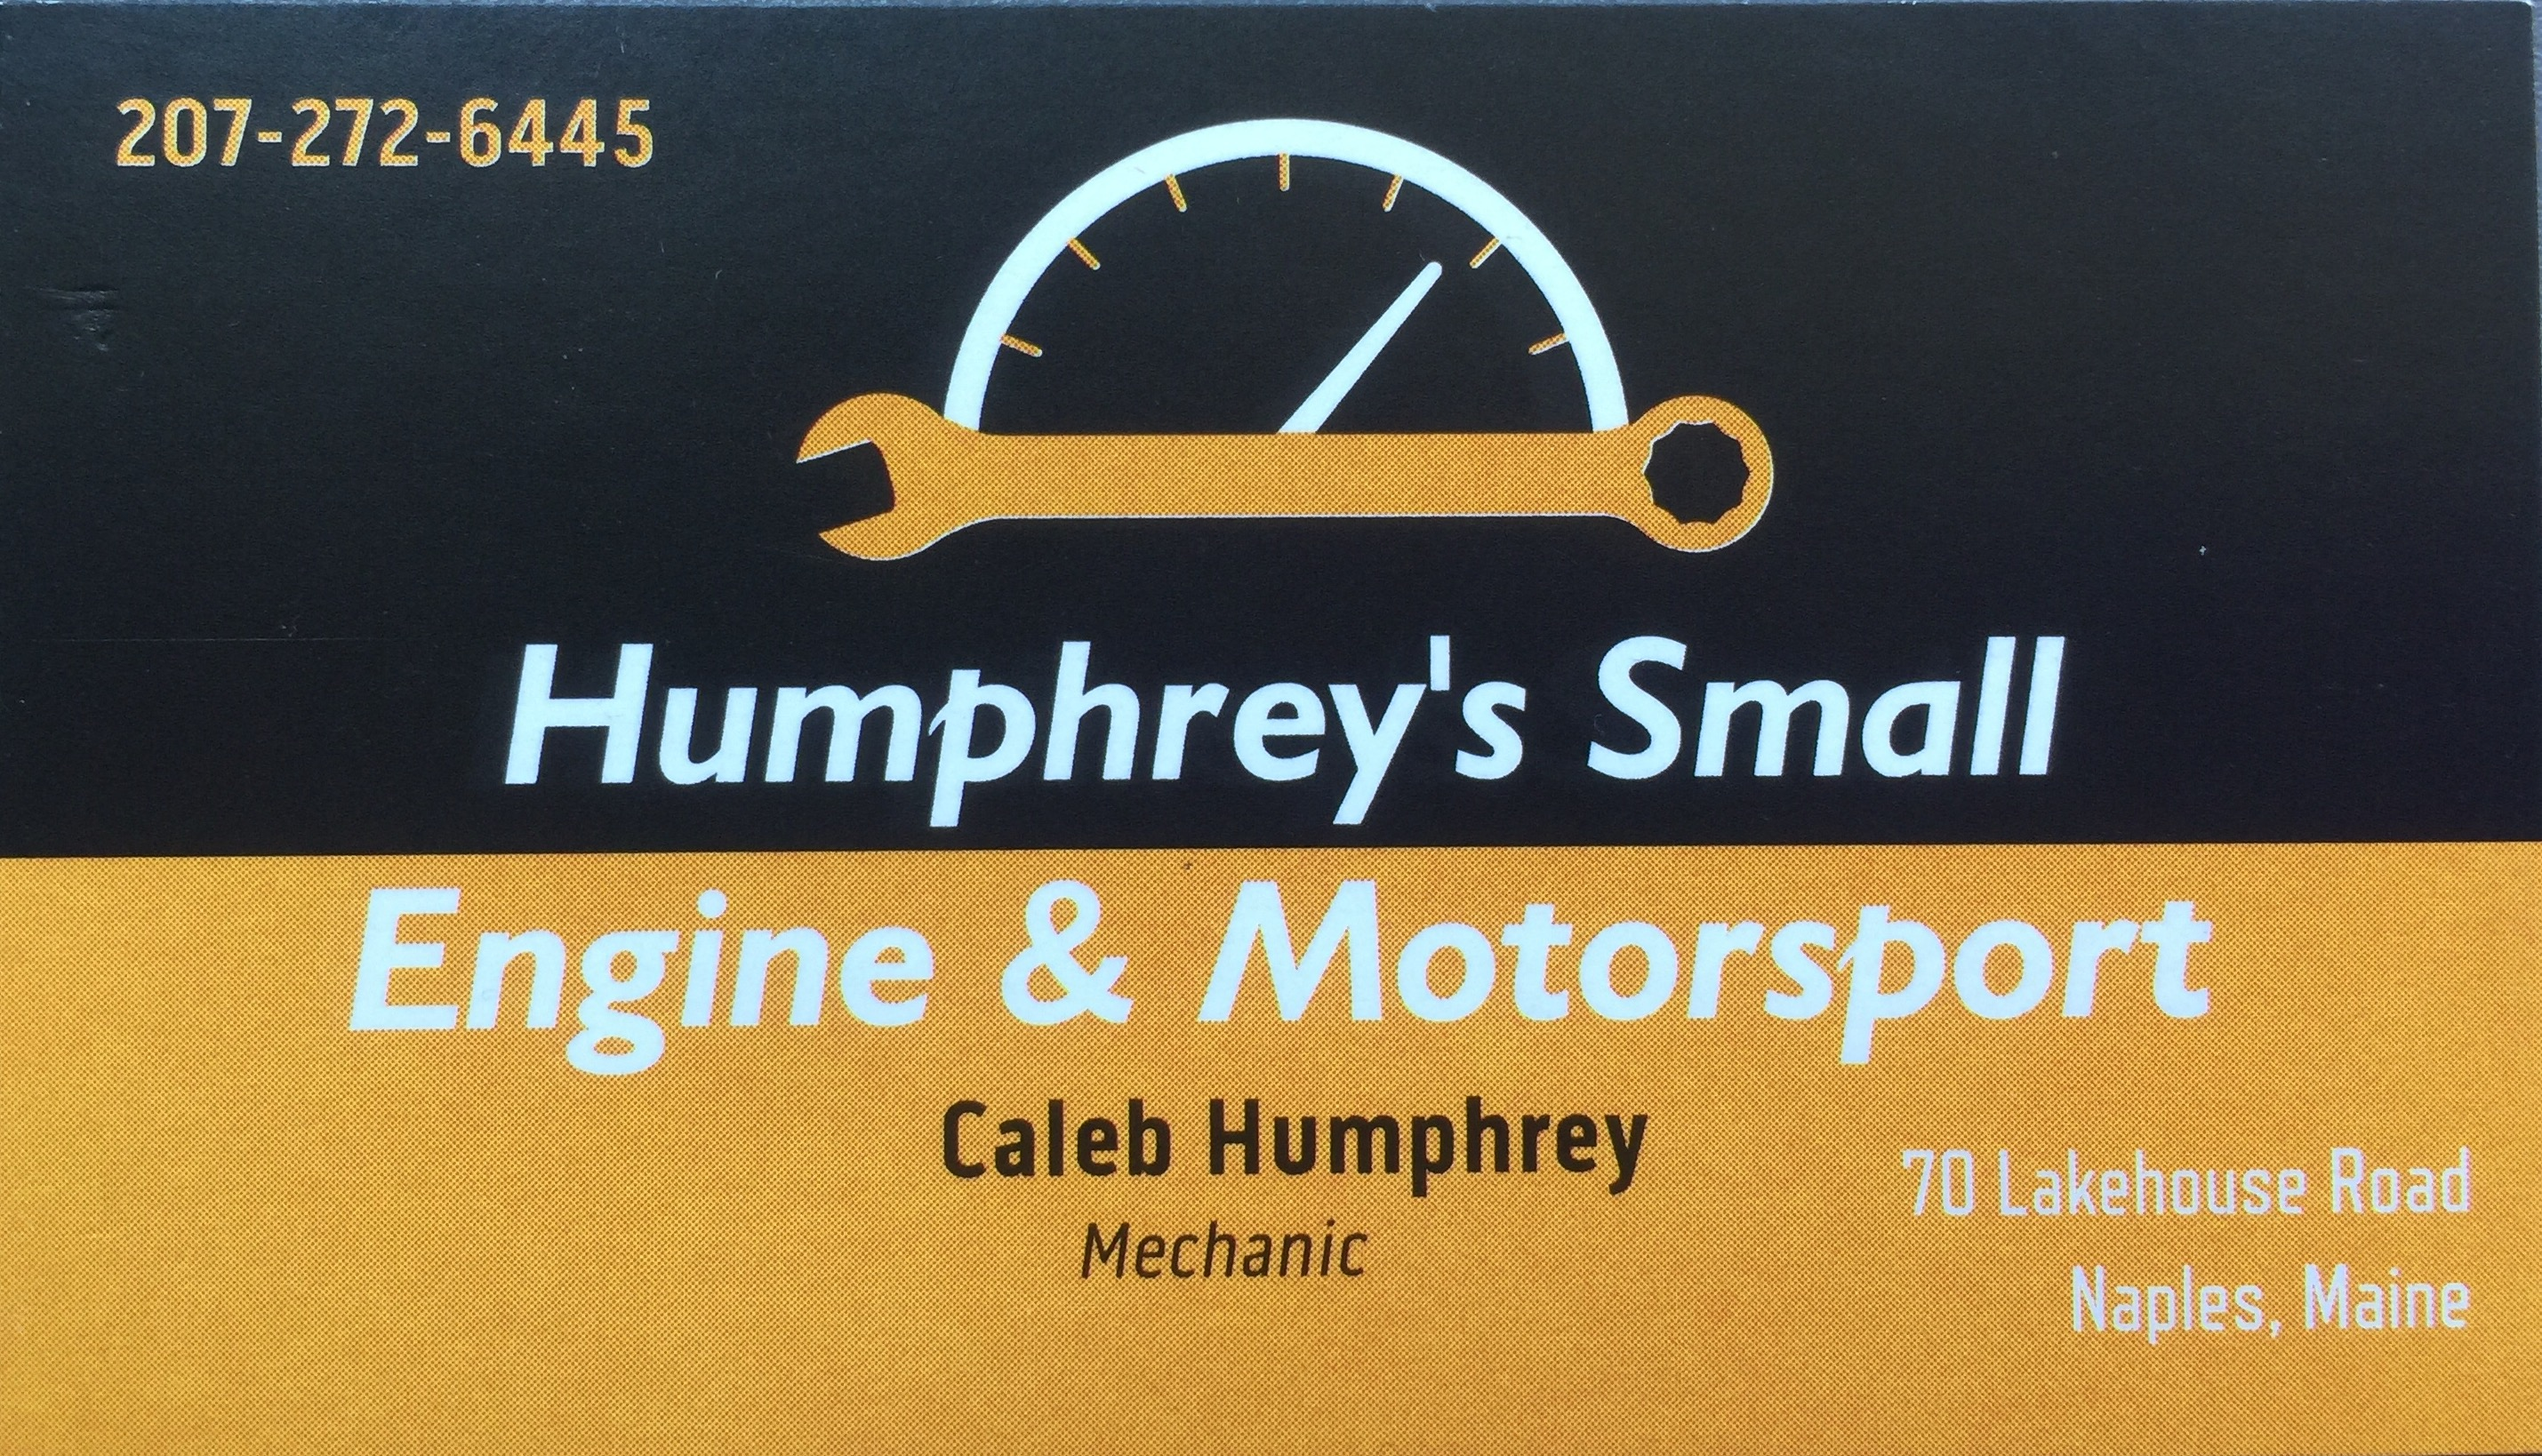 Humphrey's Small Engine